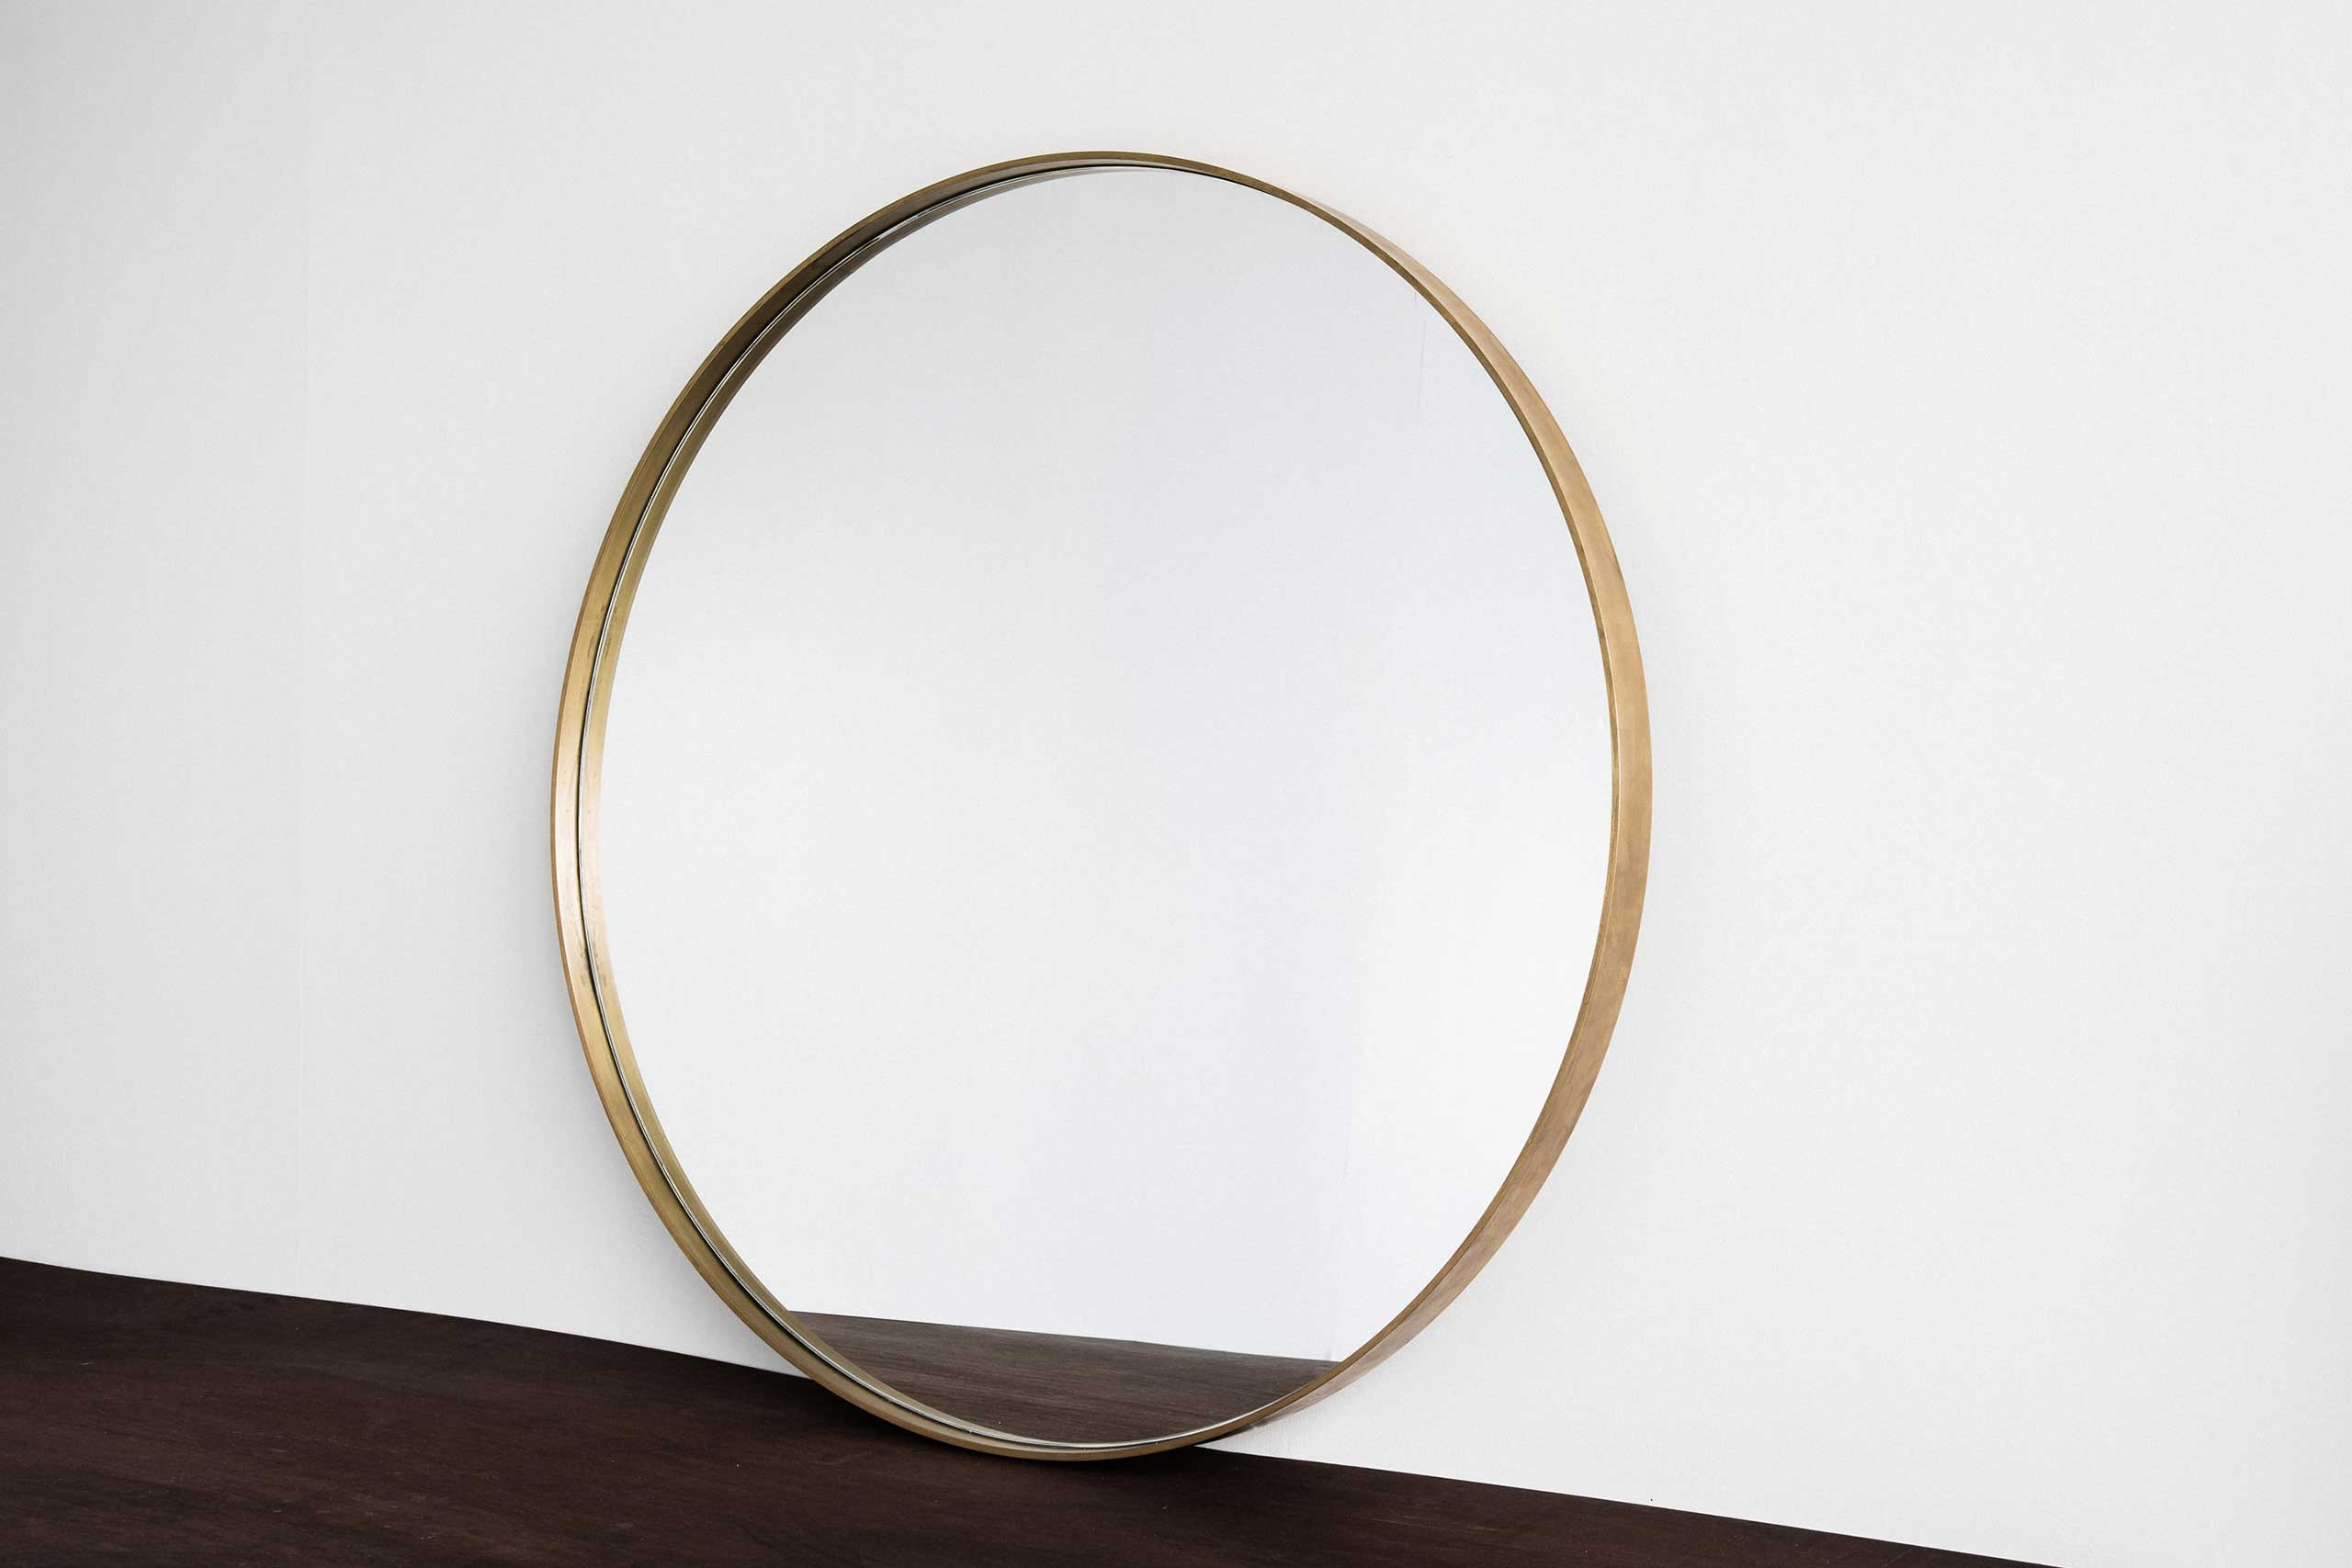 Home Industry Furniture Designed Handcrafted In New Zealand 2016 With Round Large Mirrors (View 8 of 15)